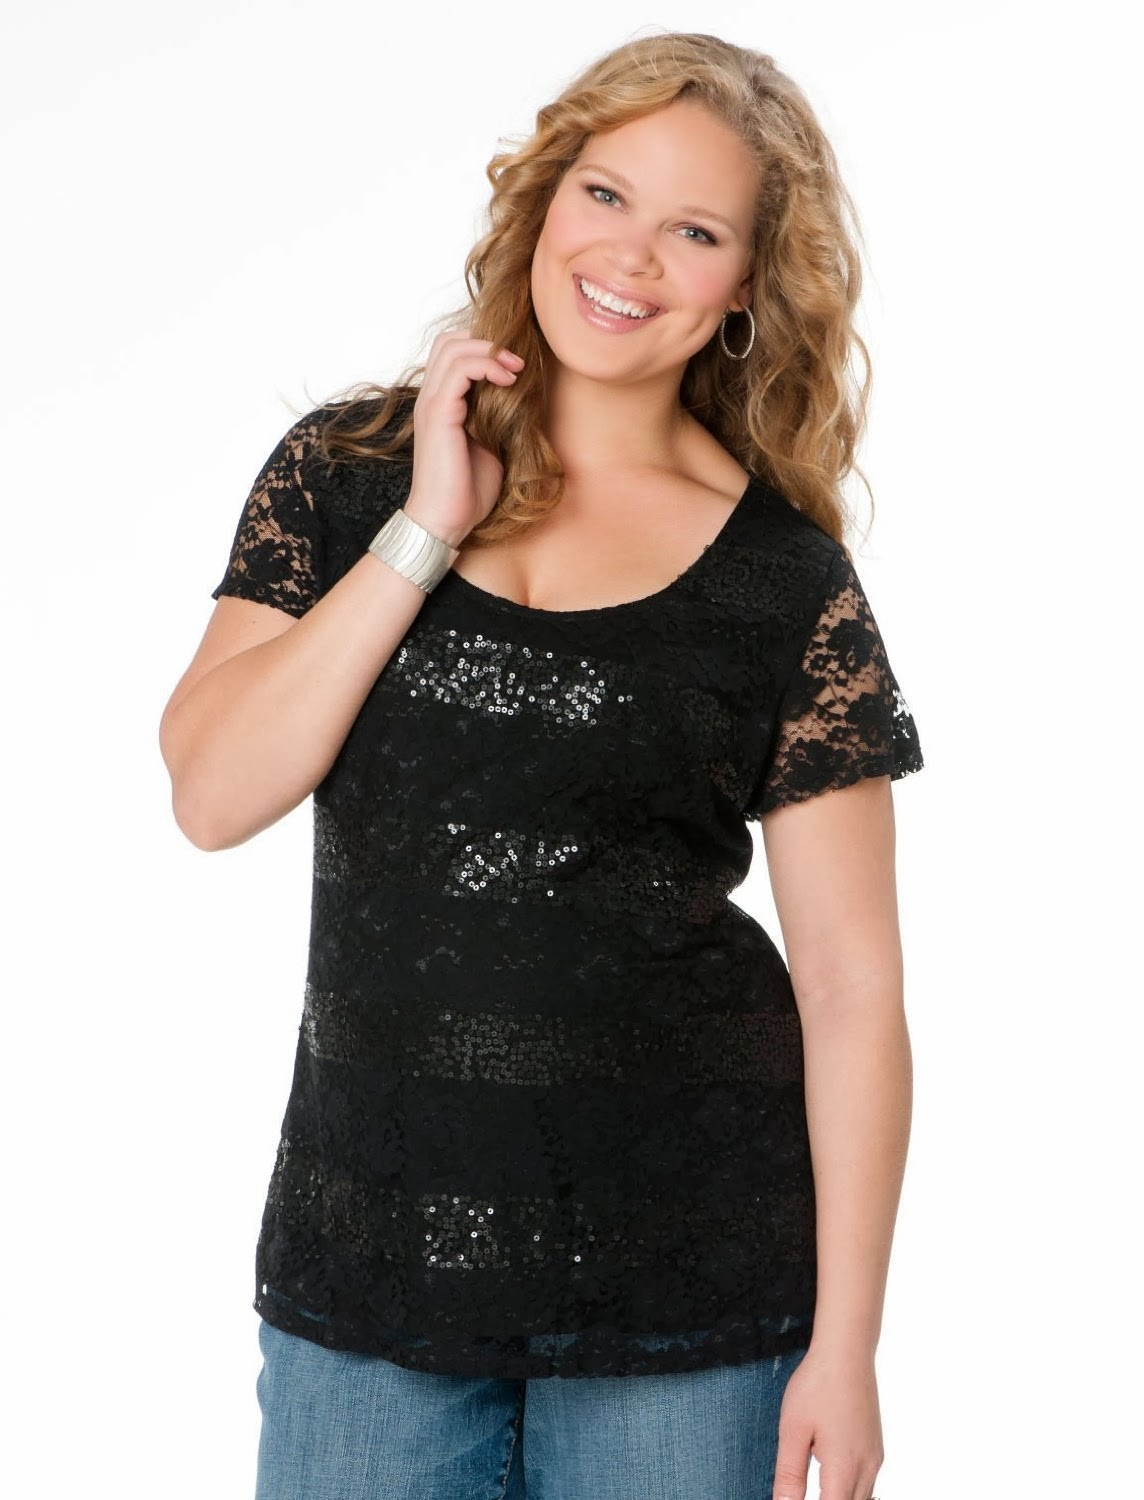 Free shipping on maternity tops at dirtyinstalzonevx6.ga Shop for maternity T-shirts, sweaters, hoodies & more from the best brands. Totally free shipping & returns.